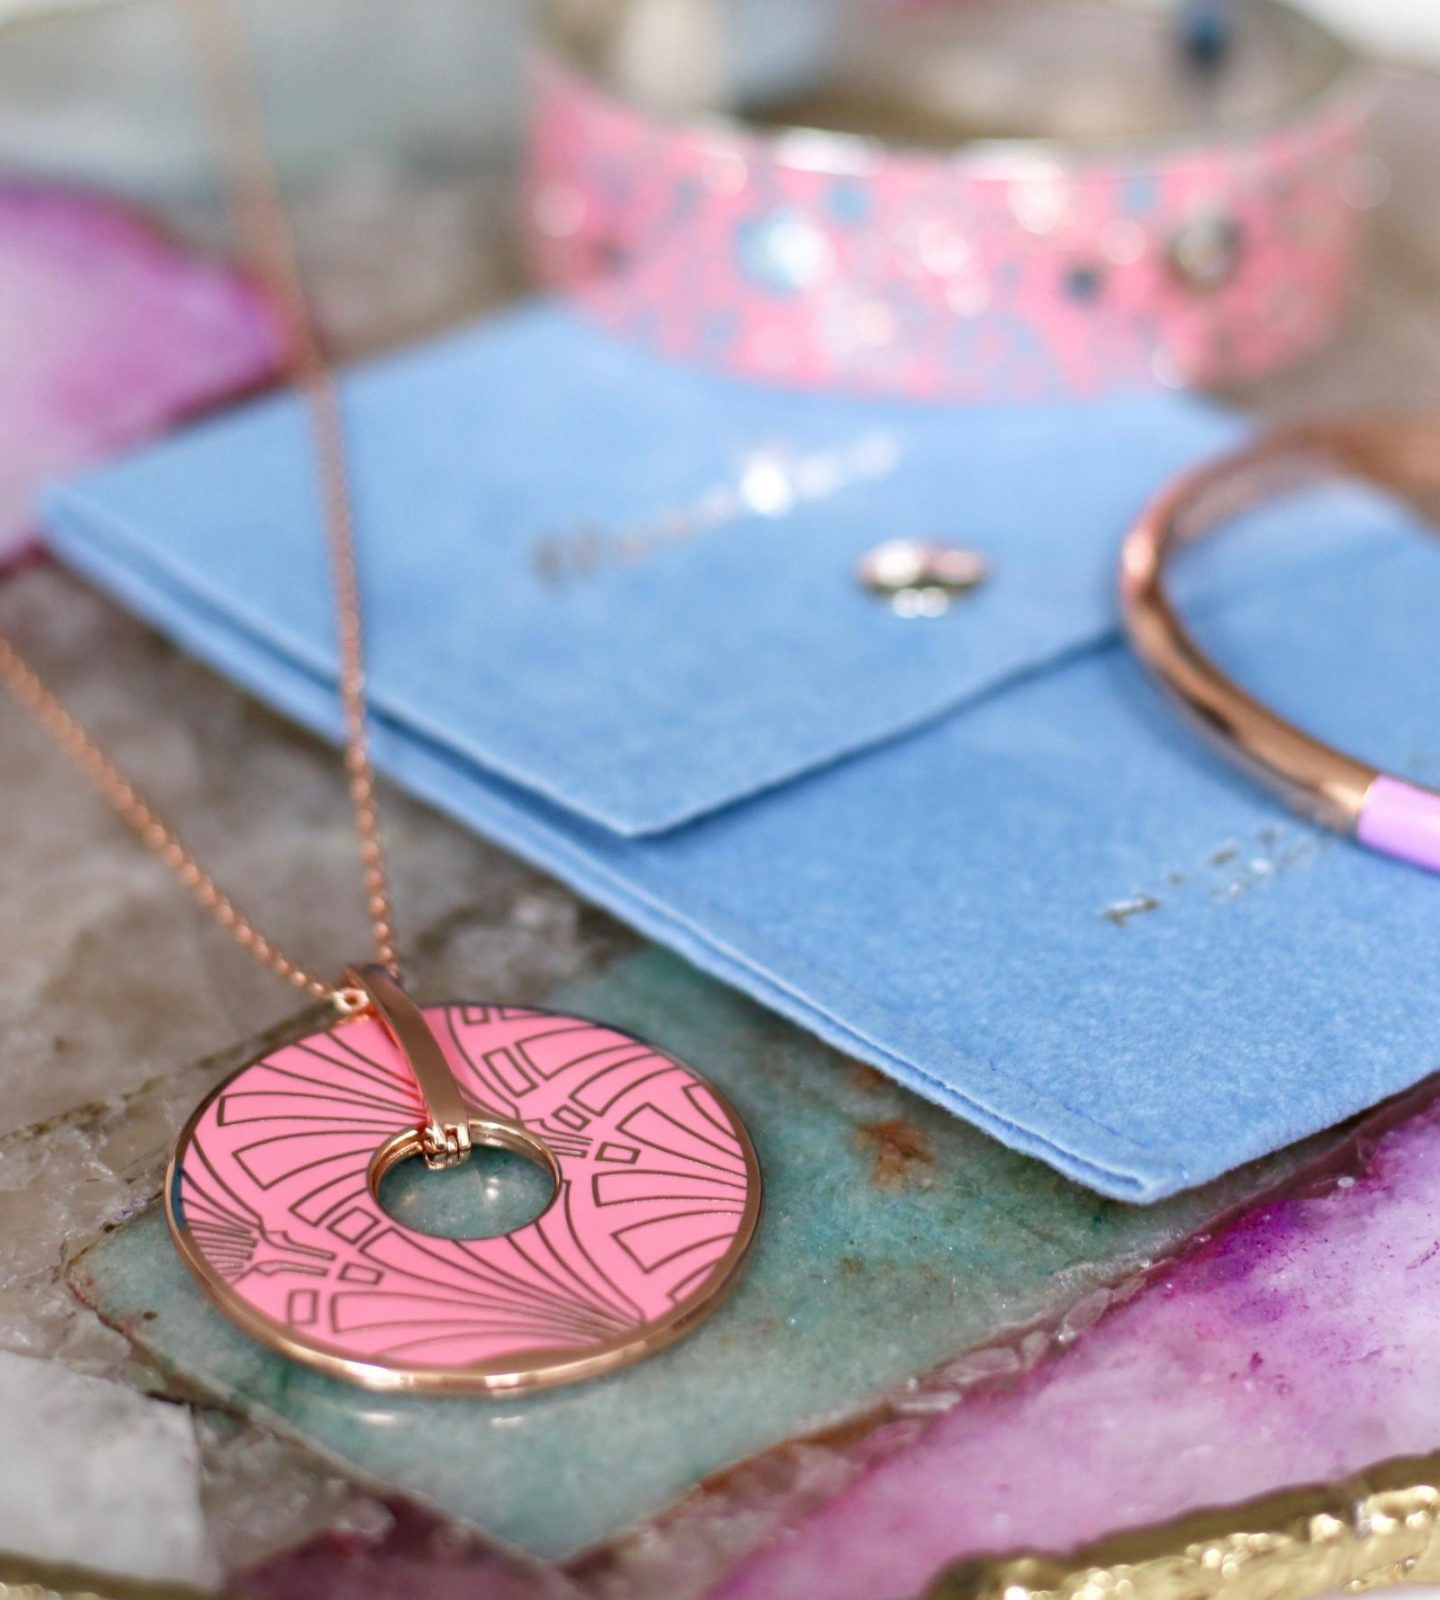 newbridge silverware moonkoin pendant in rose gold and pink